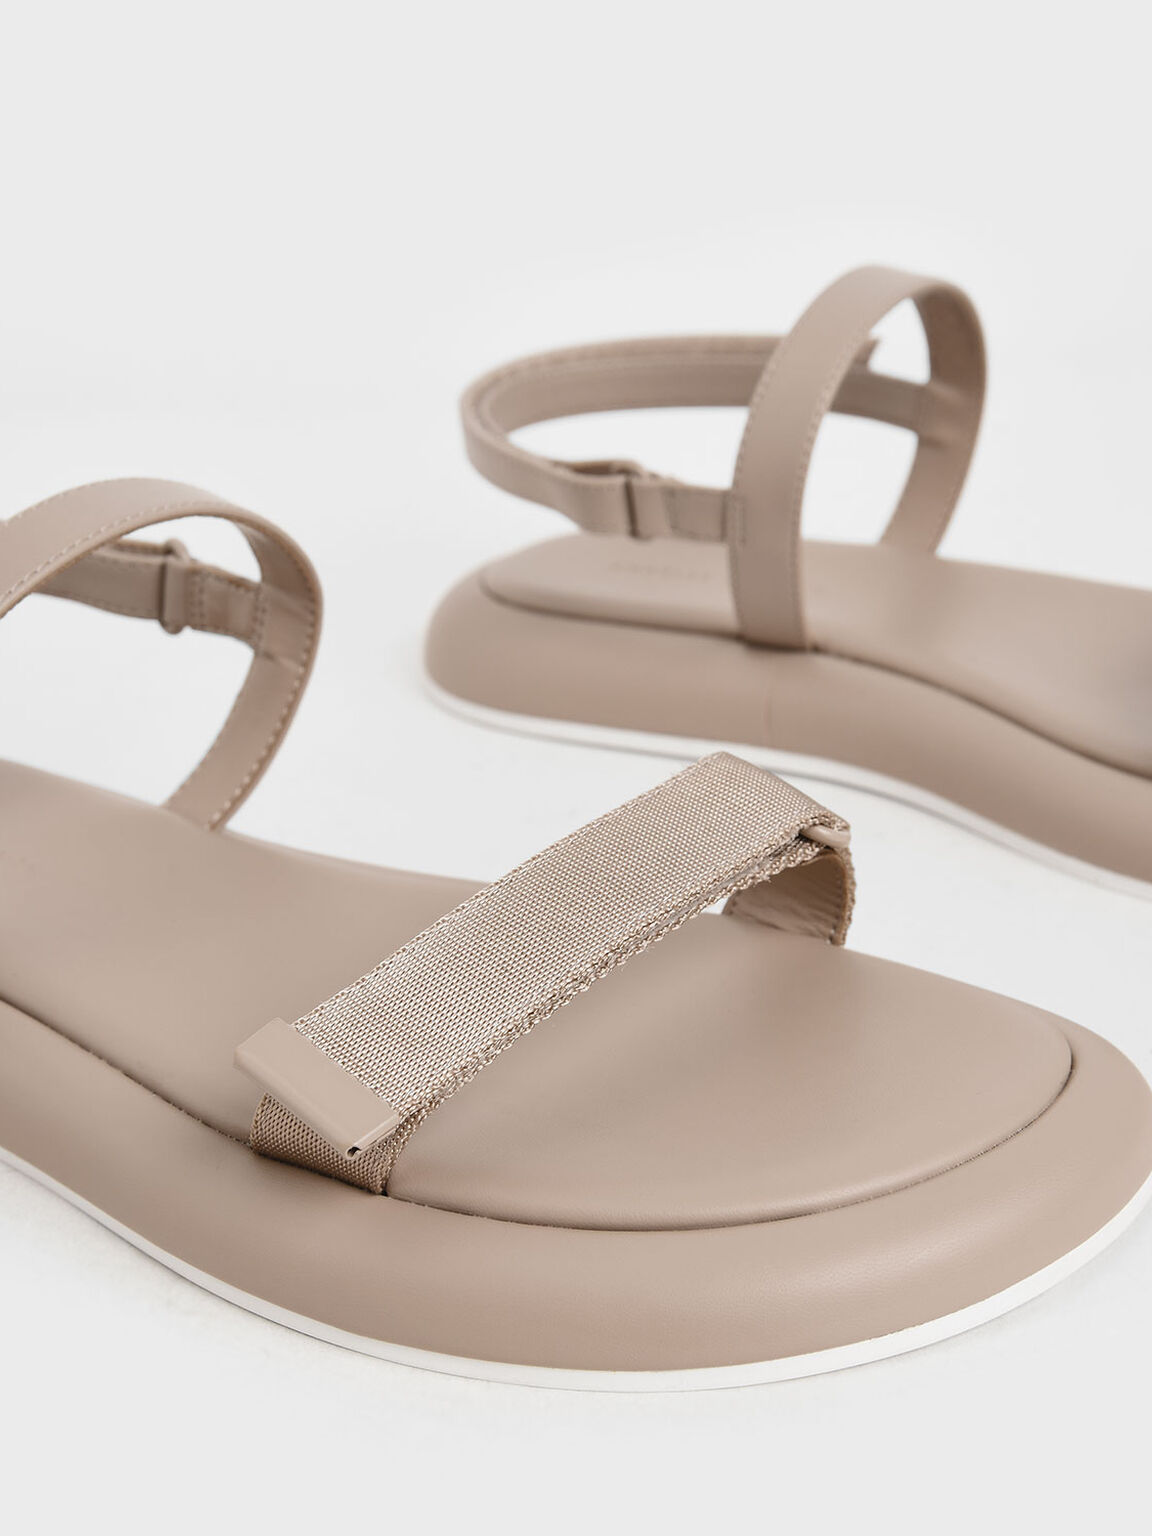 Velcro Strap Sandals, Nude, hi-res